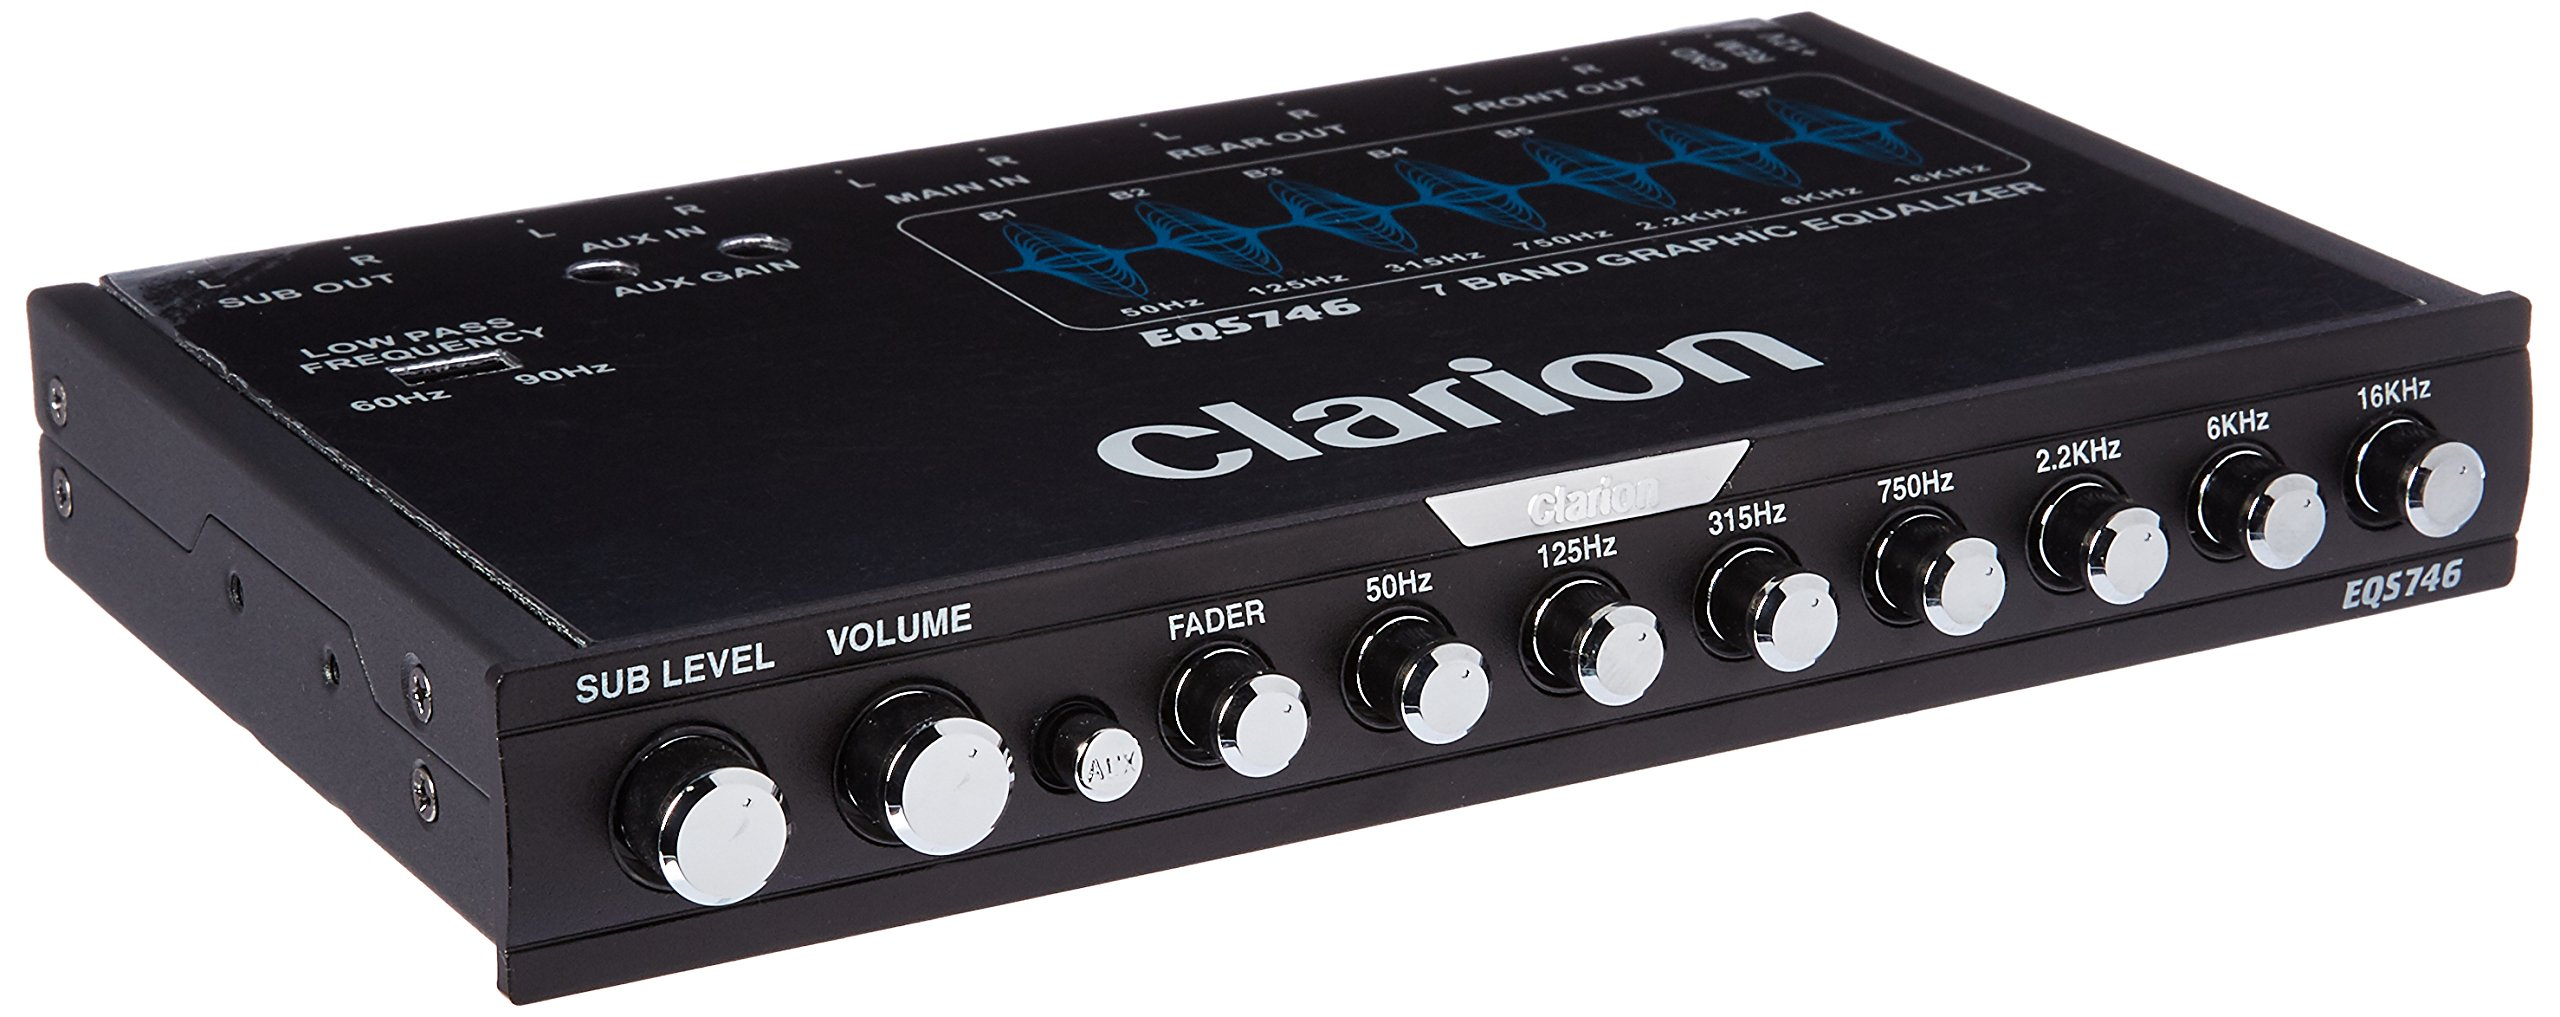 Cheap Clarion Equalizer, find Clarion Equalizer deals on